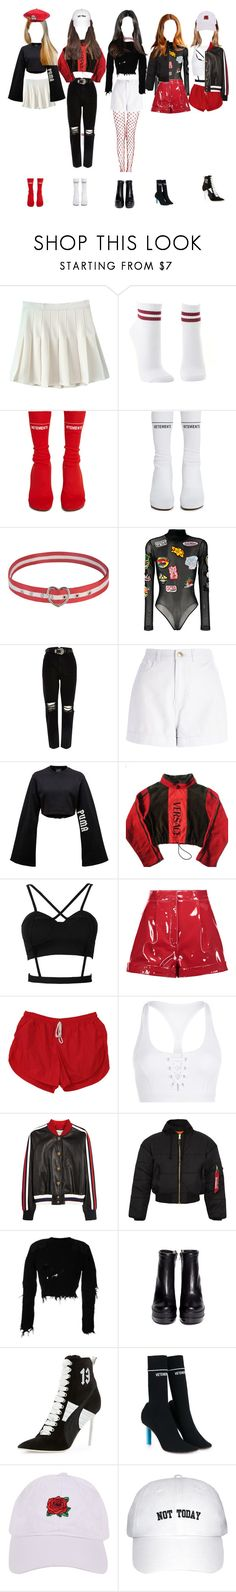 """""""music video no. 6"""" by taekook-junghyung ❤ liked on Polyvore featuring Charlotte Russe, Vetements, GCDS, River Island, Puma, Versace, Valentino, Lorna Jane, Gucci and Yeezy by Kanye West"""